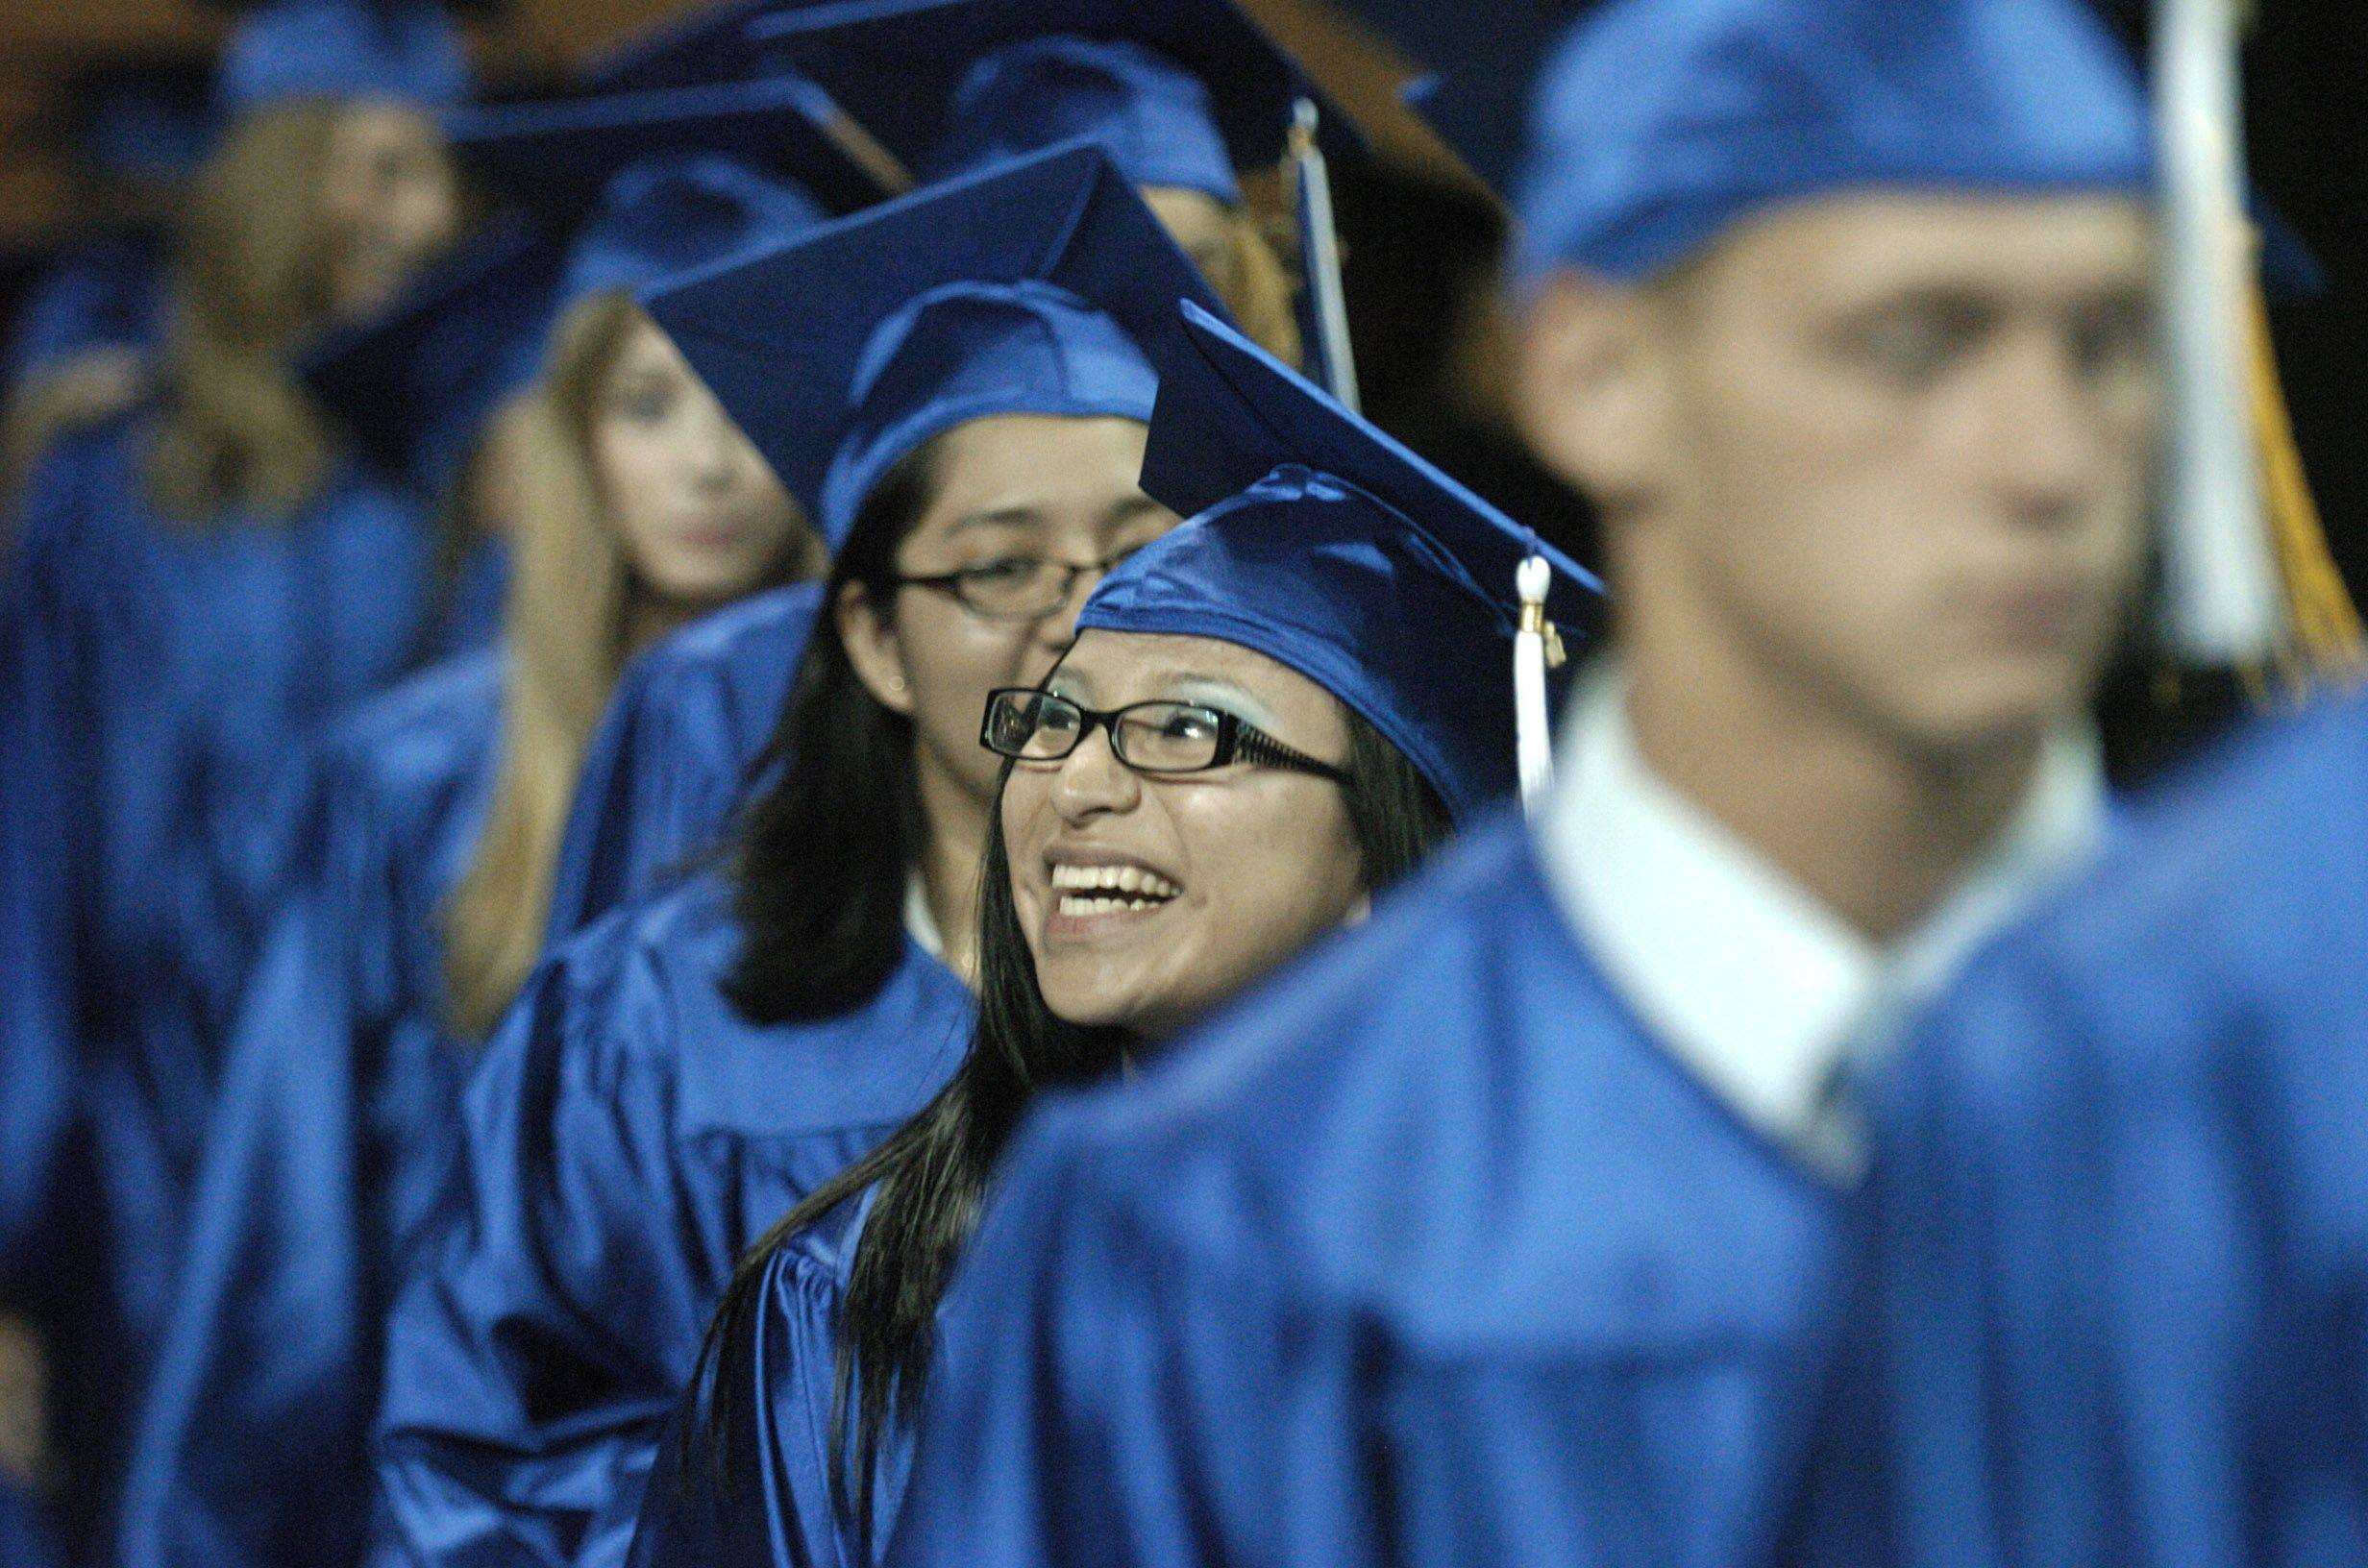 Cynthia Martinez smiles to family as she walks out of the corridor and onto the main floor for Larkin High School's commencement ceremony at the Sears Centre in Hoffman Estates on Saturday.